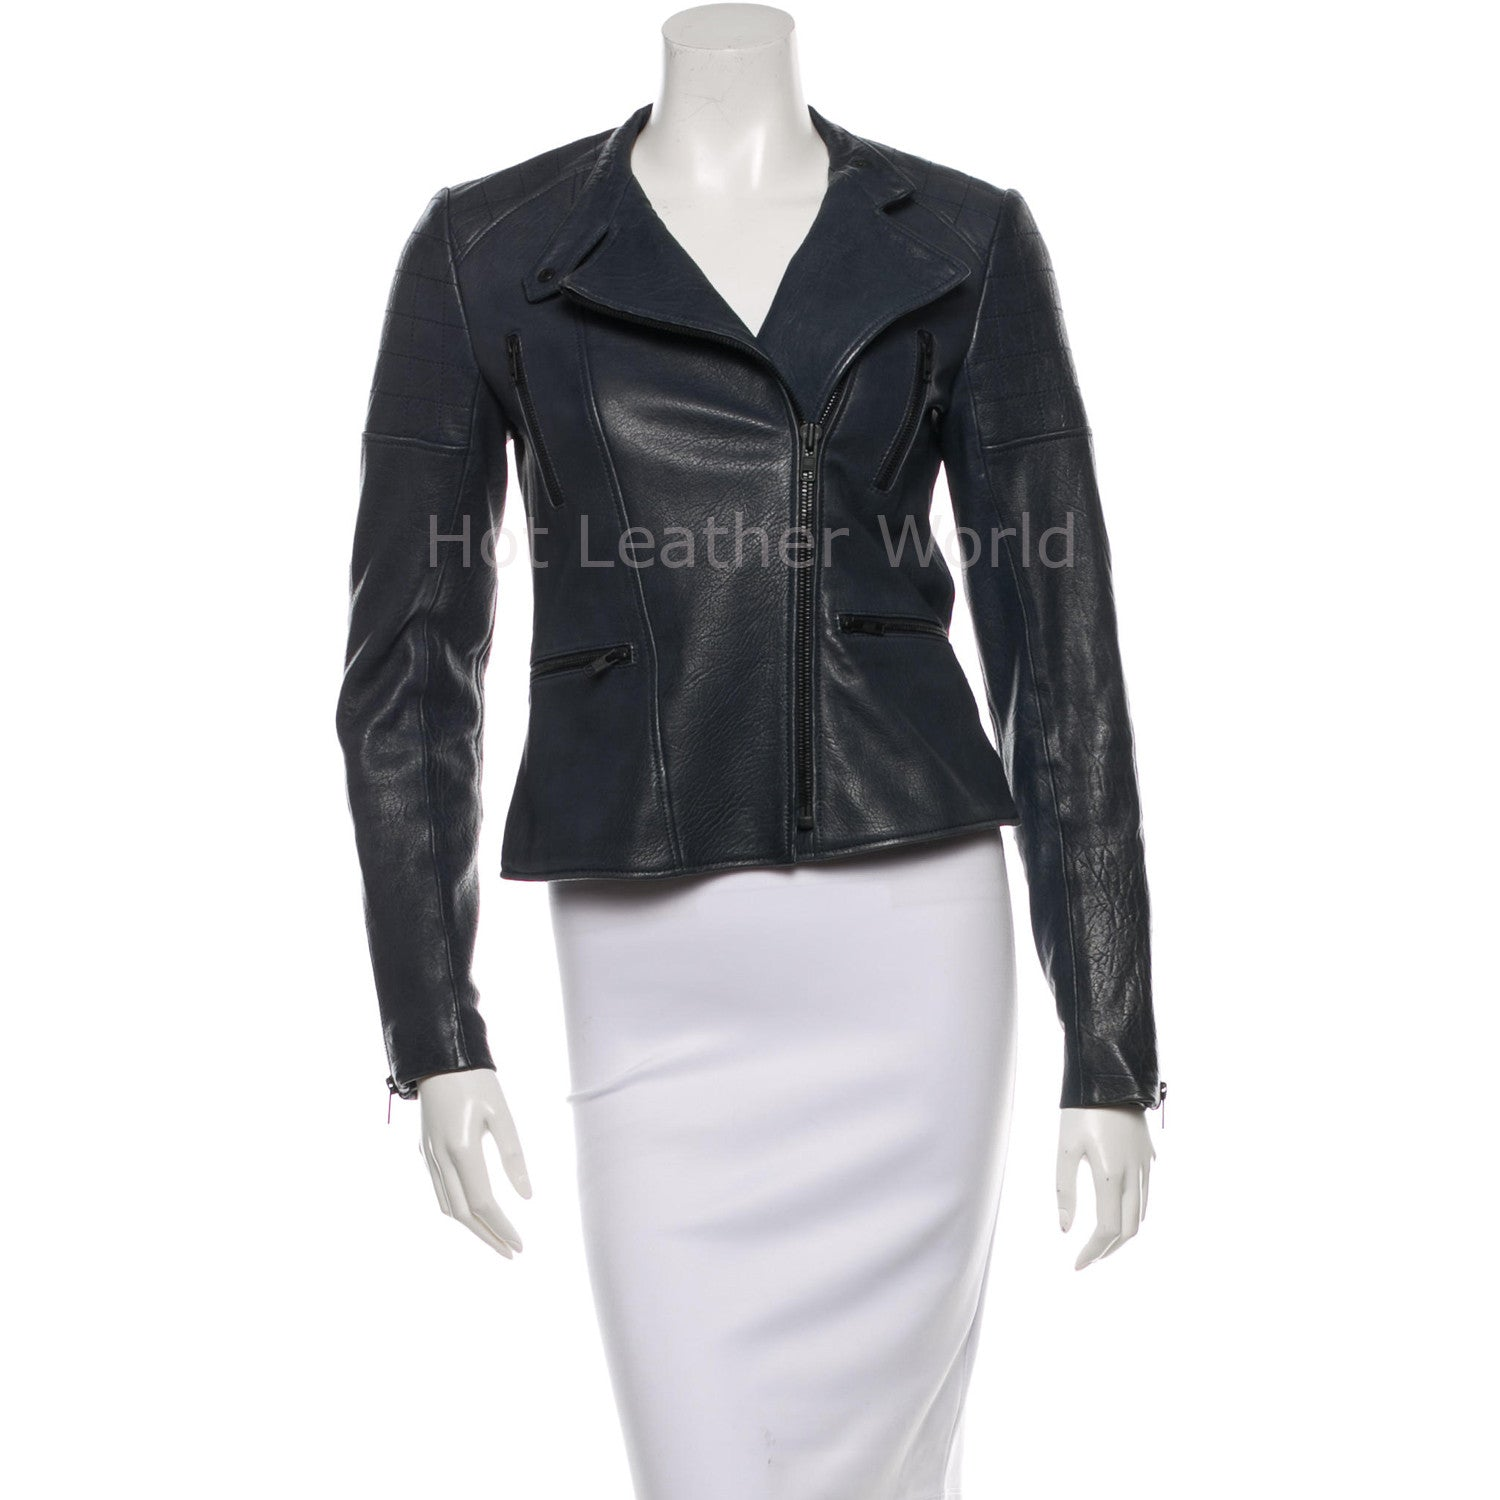 Navy Style Women Leather Biker Jacket -  HOTLEATHERWORLD